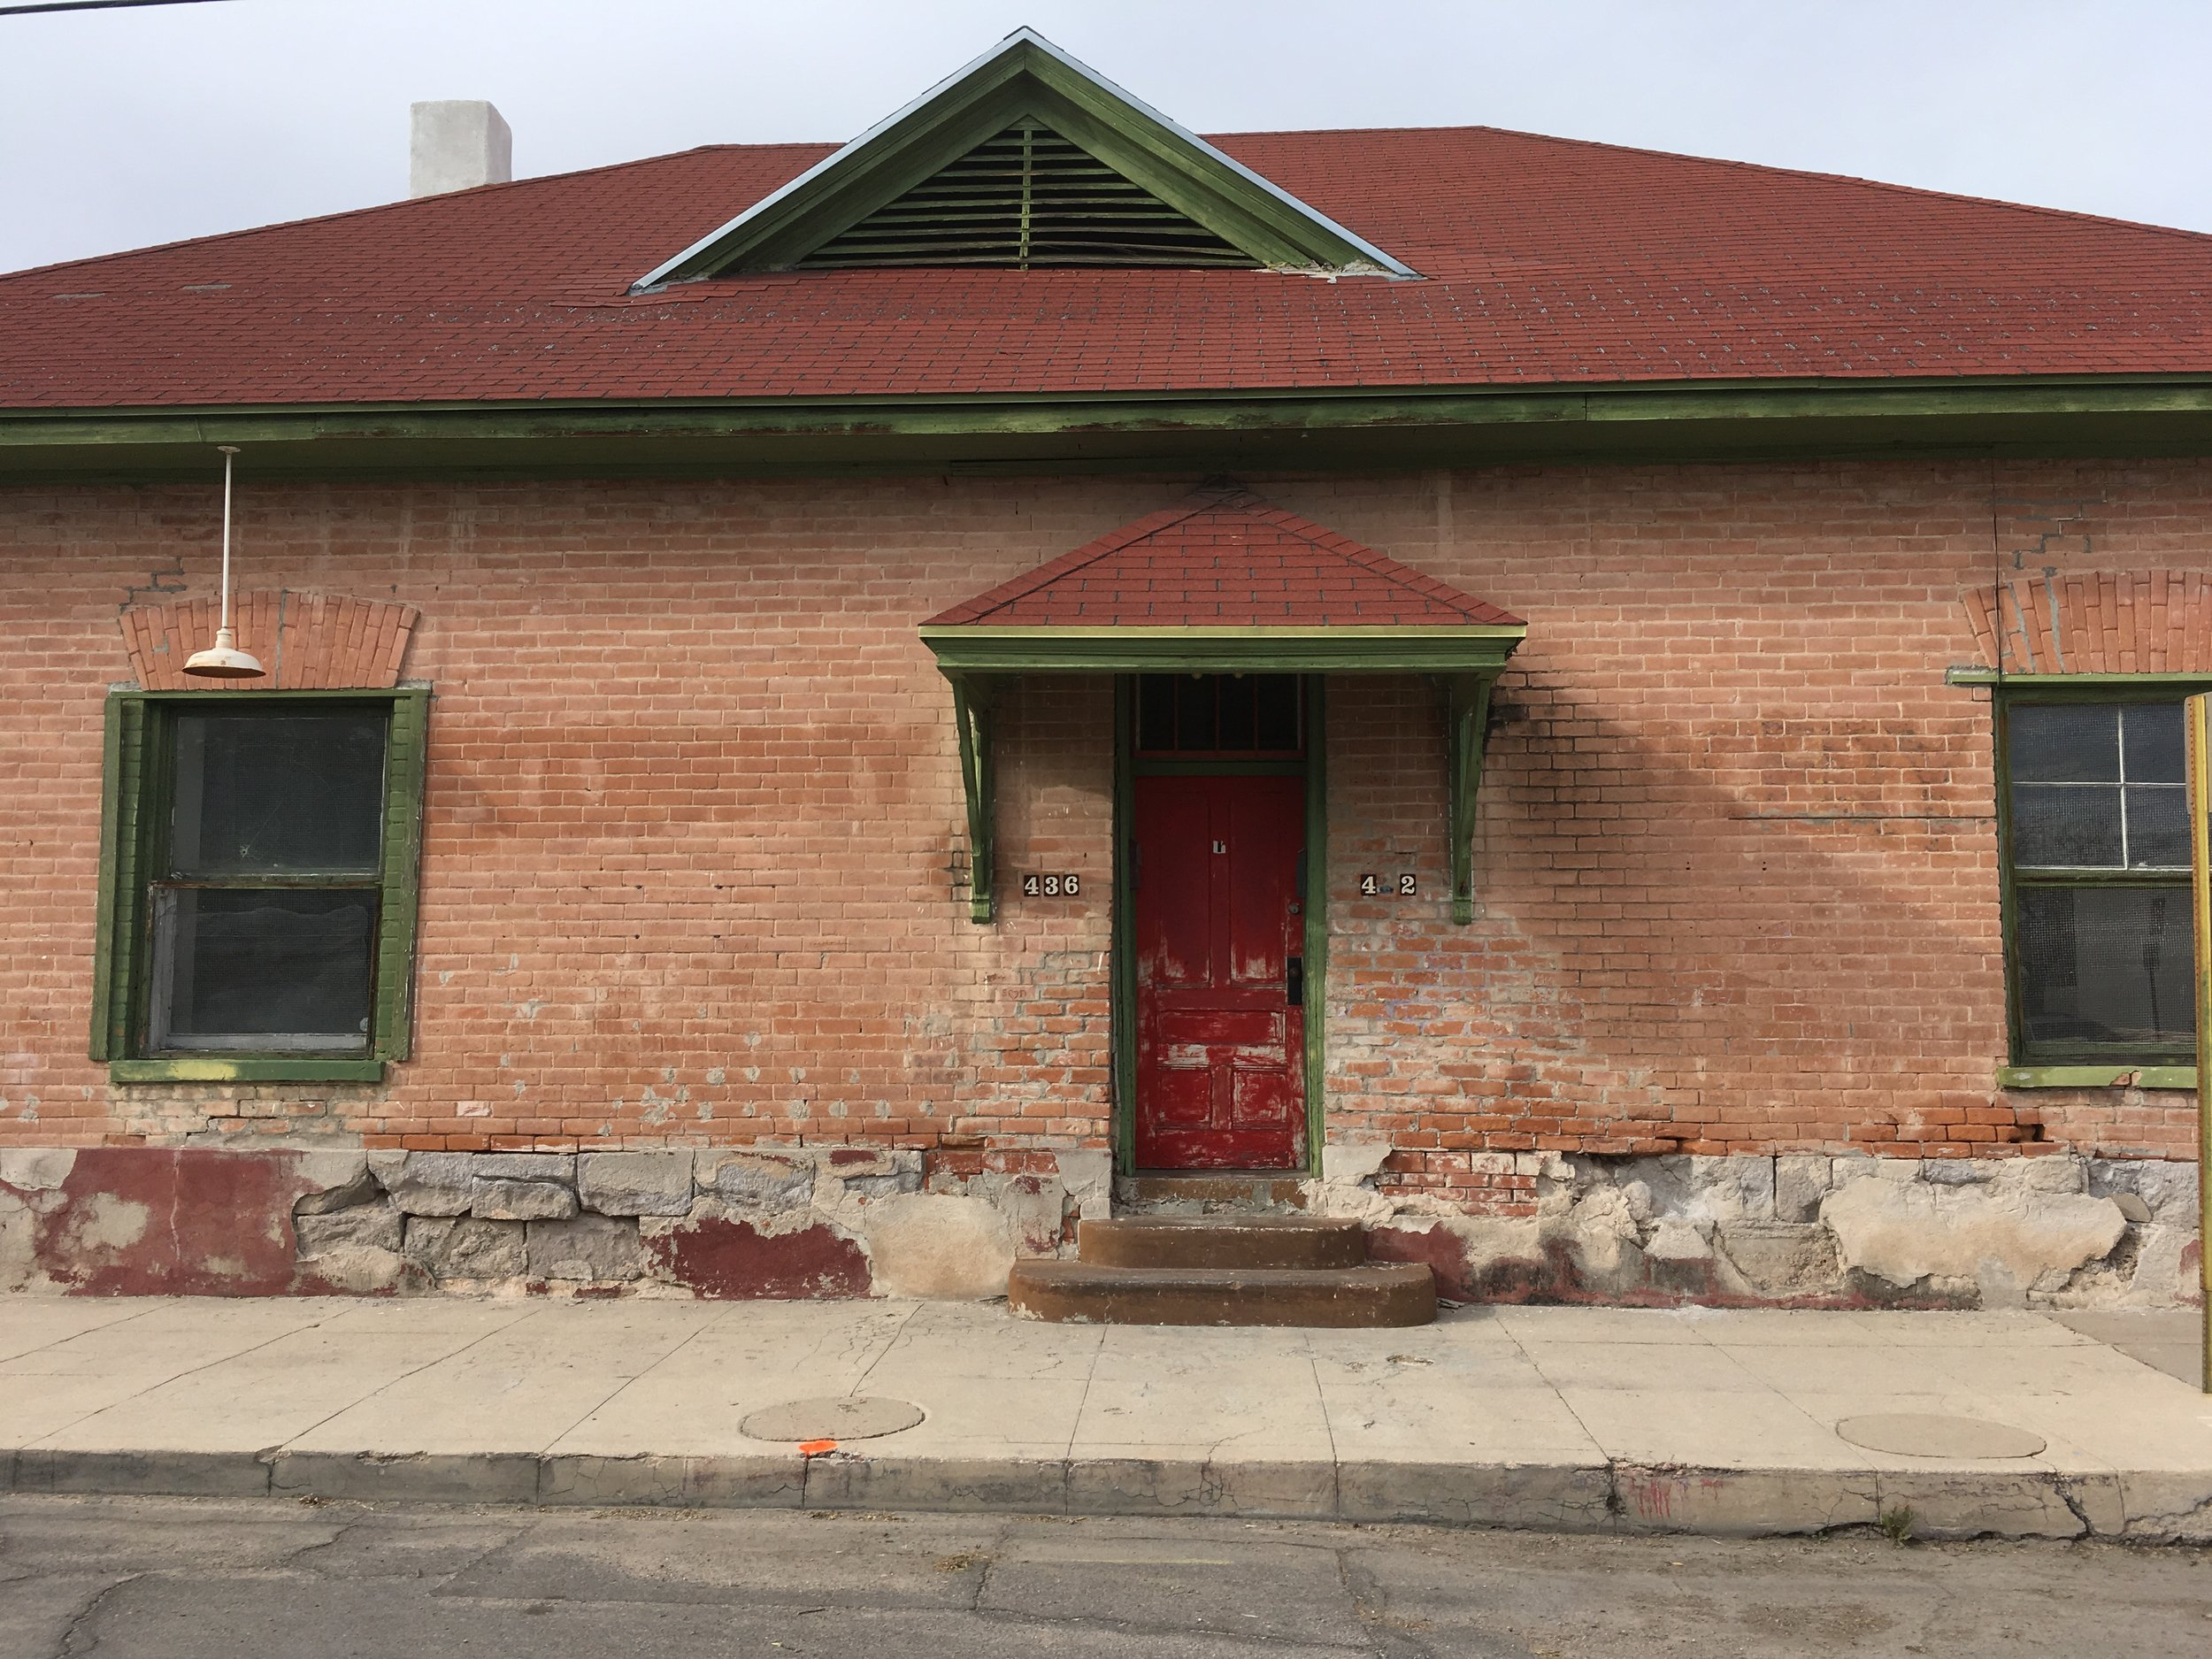 Sadly, the front of 432-436 S. Convent is in danger of collapse. It is difficult to tell from this photo, but the brick and stone along the bottom of the building are popping out. December 2018.